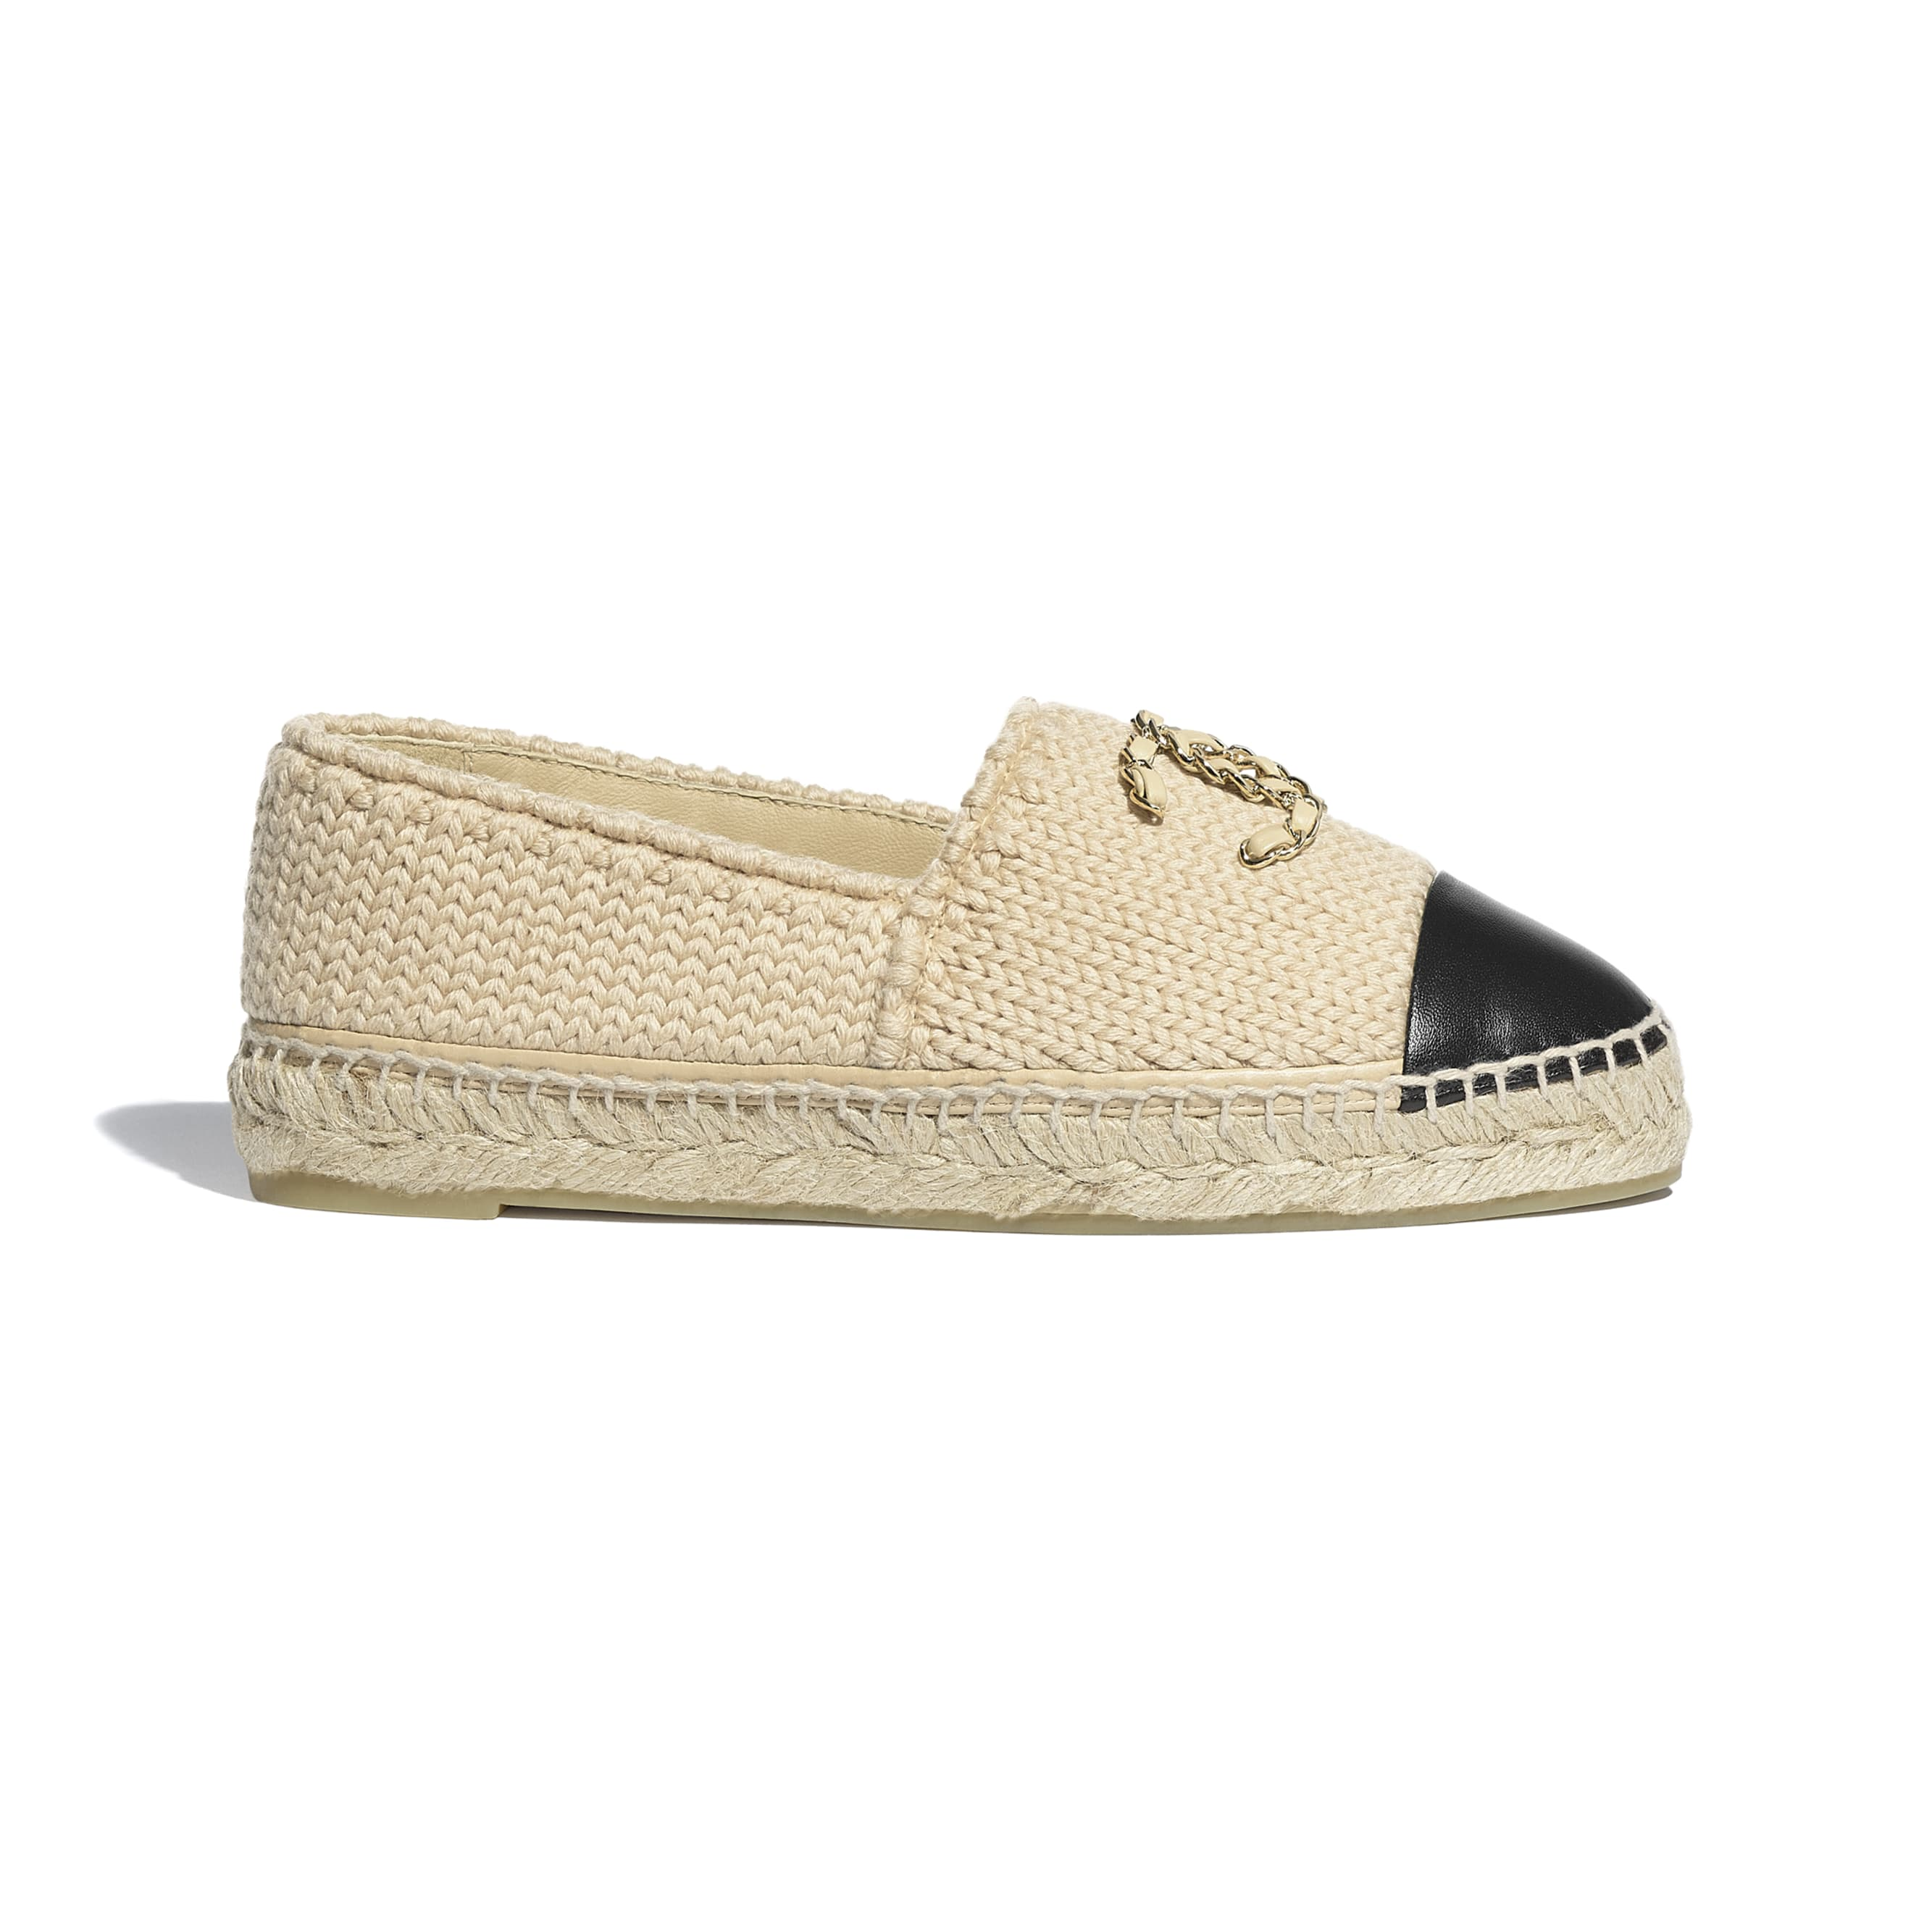 Espadrilles - Beige & Black - Knitted Wool & Lambskin - CHANEL - Default view - see standard sized version